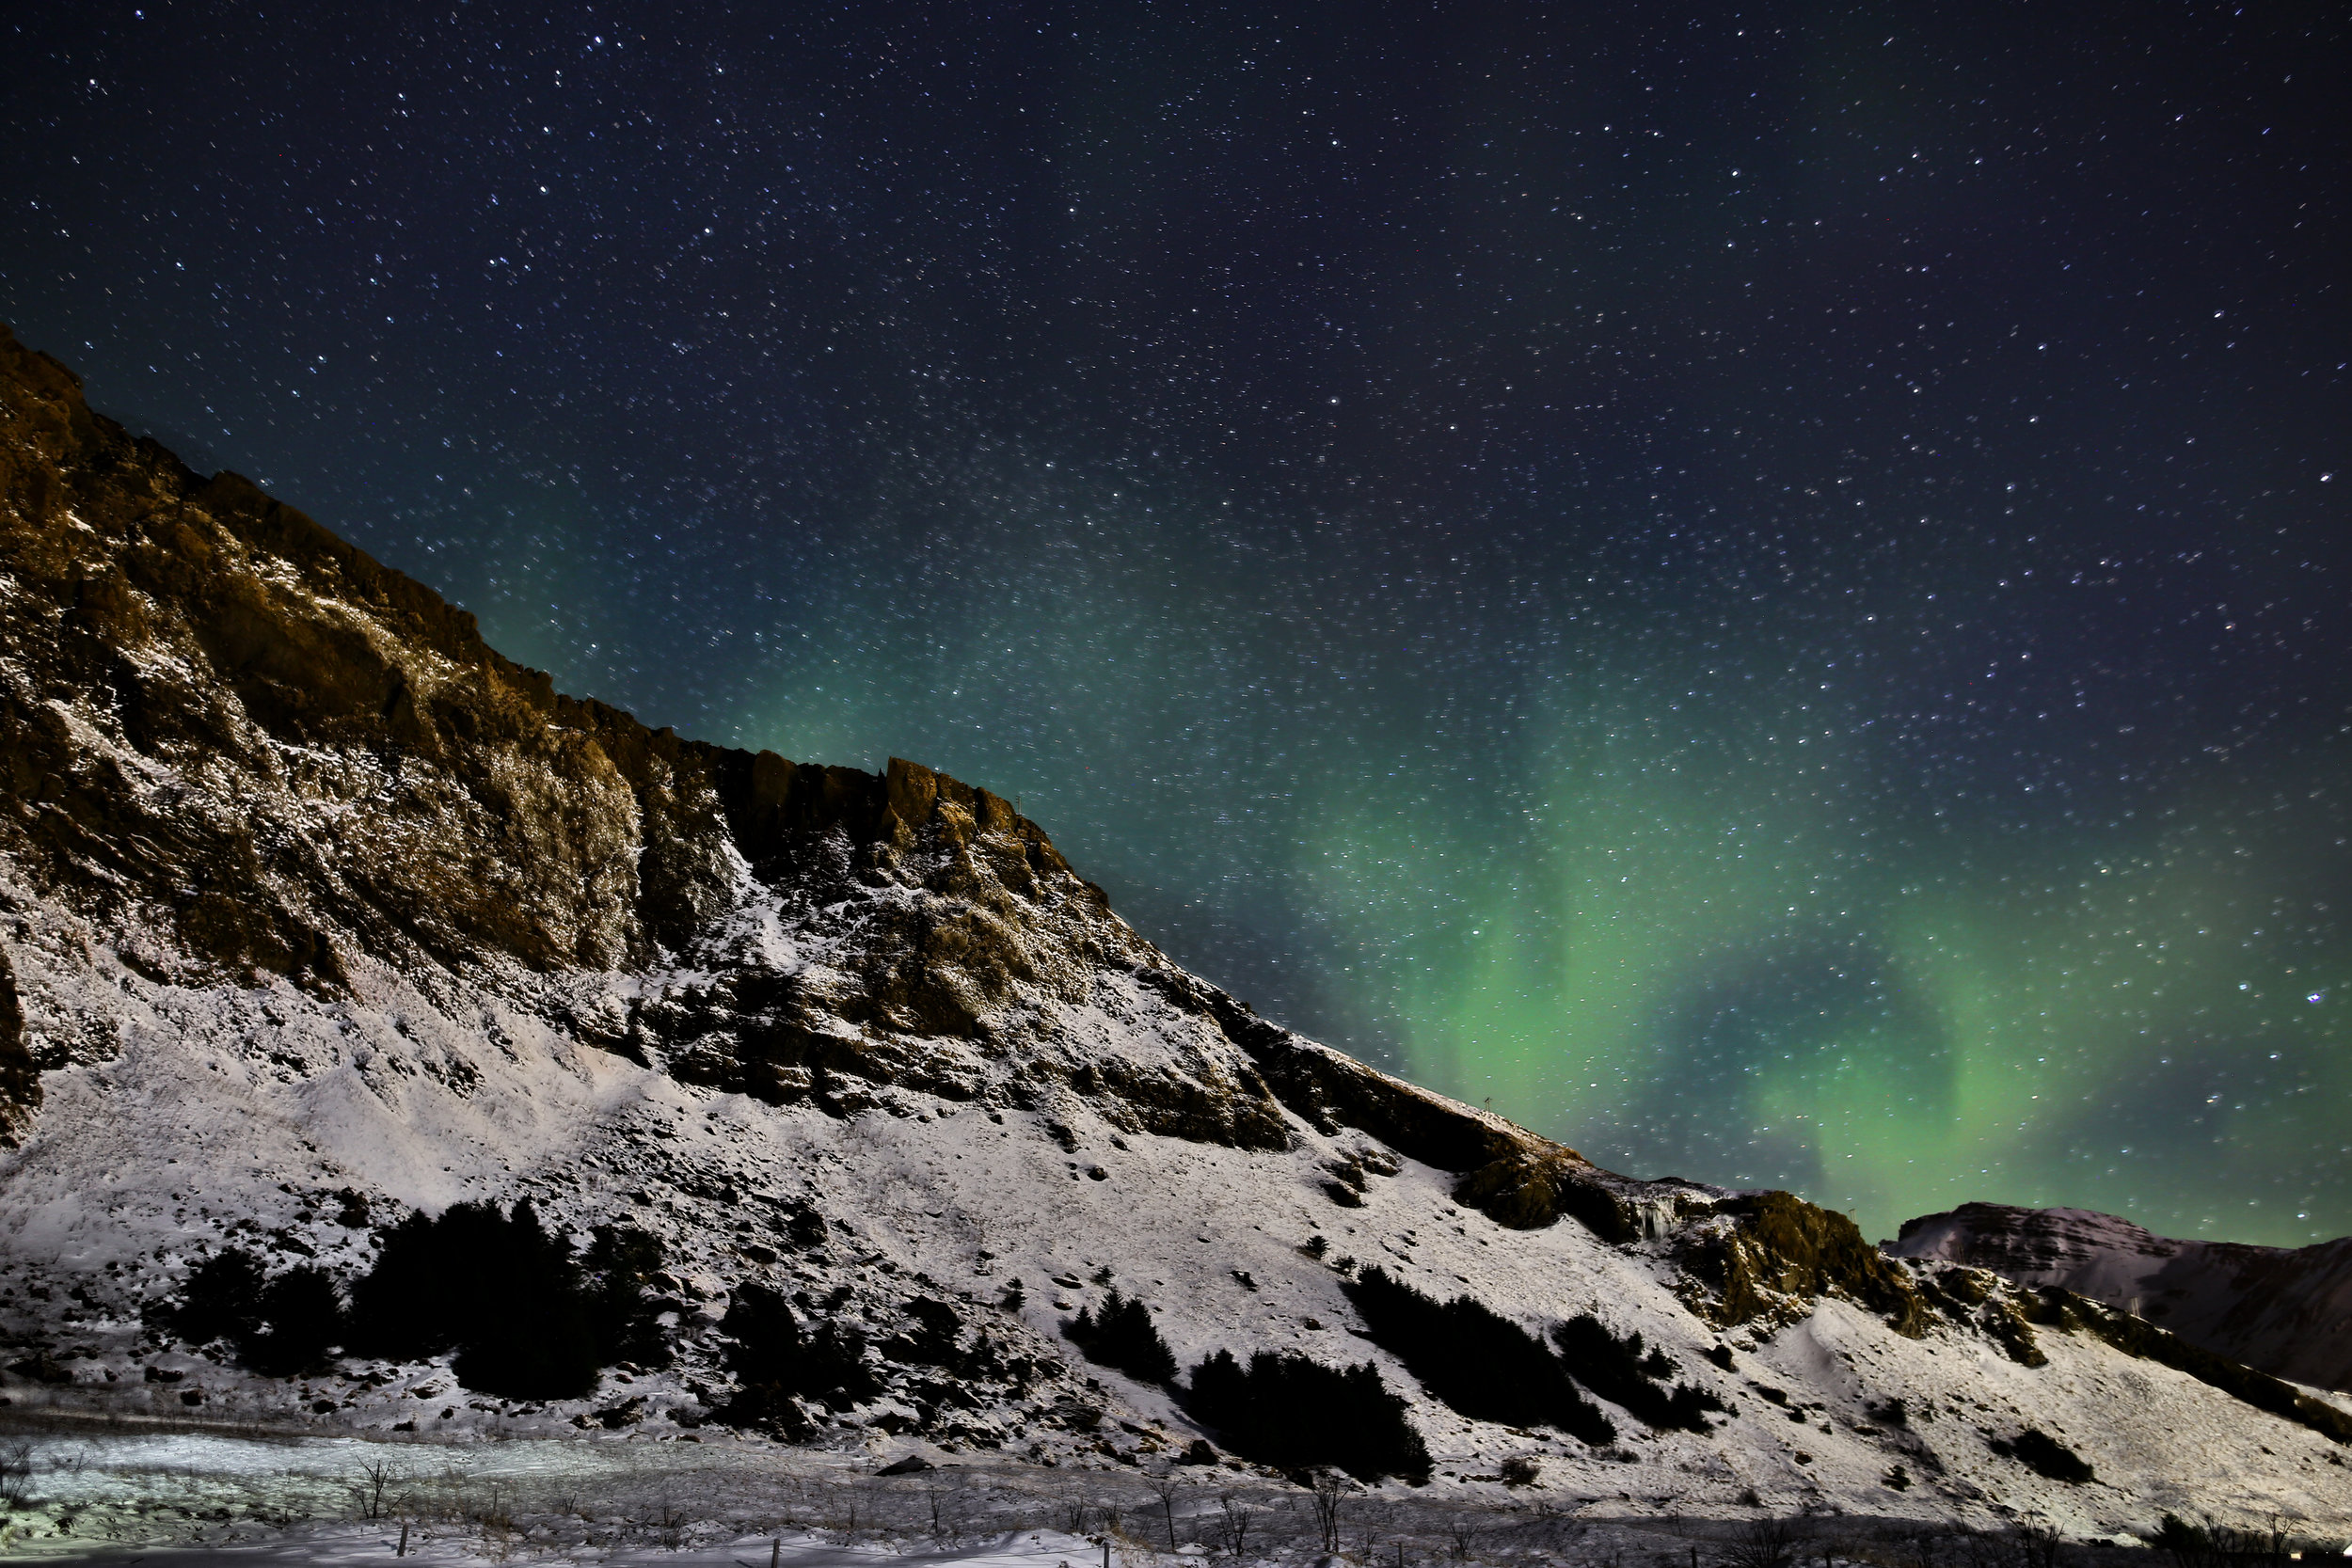 The incredible northern lights I captured while at a destination wedding in Iceland.